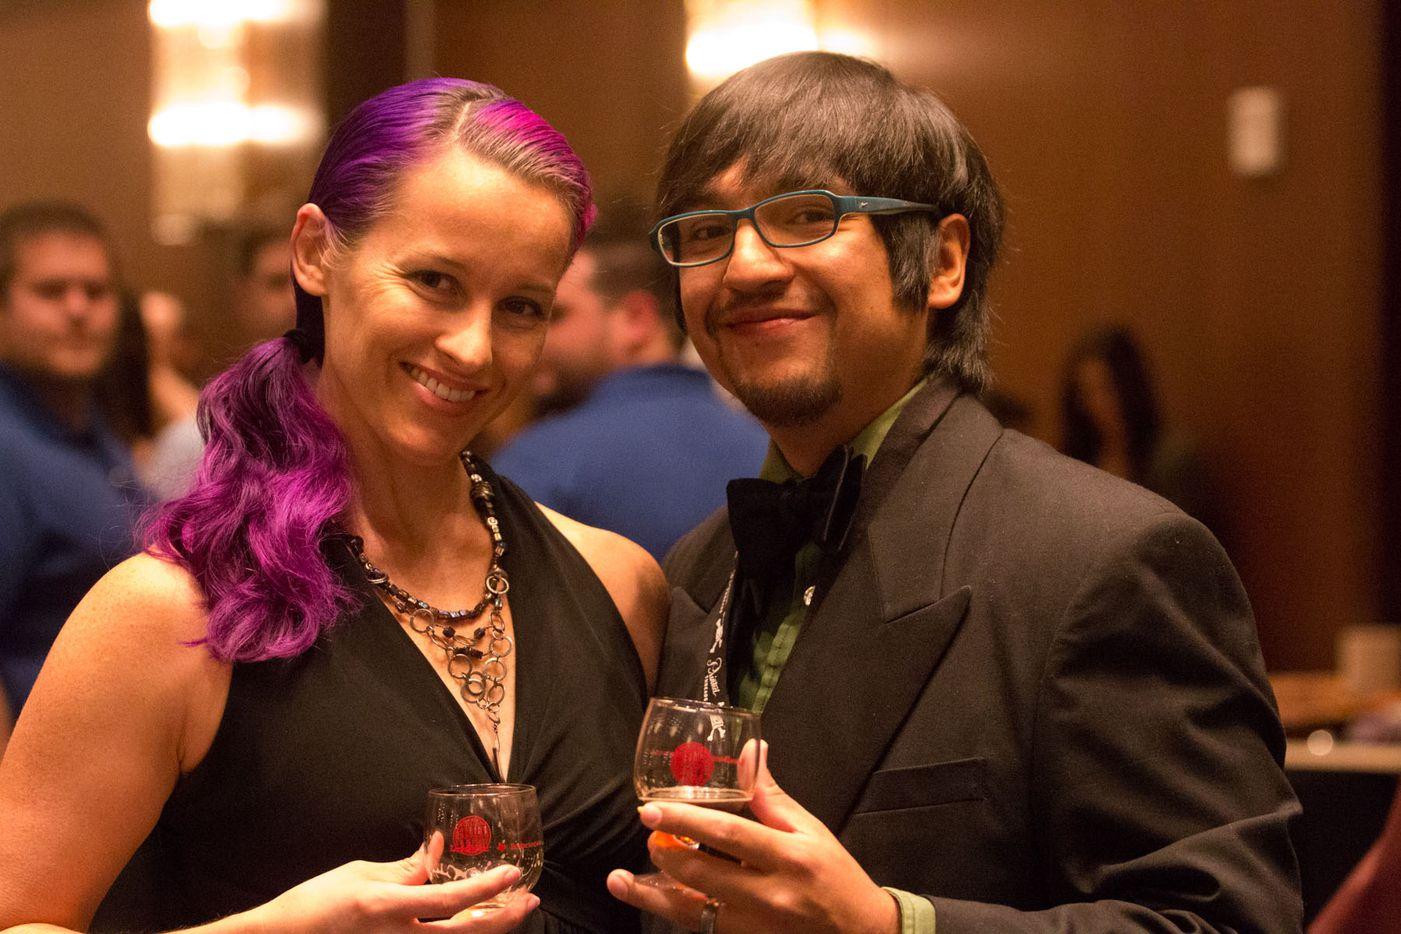 NTX Beer Week held its Second Annual Brewers Ball at the Renaissance Dallas Hotel on November 13, 2015. Brigitte and Alex Lepe